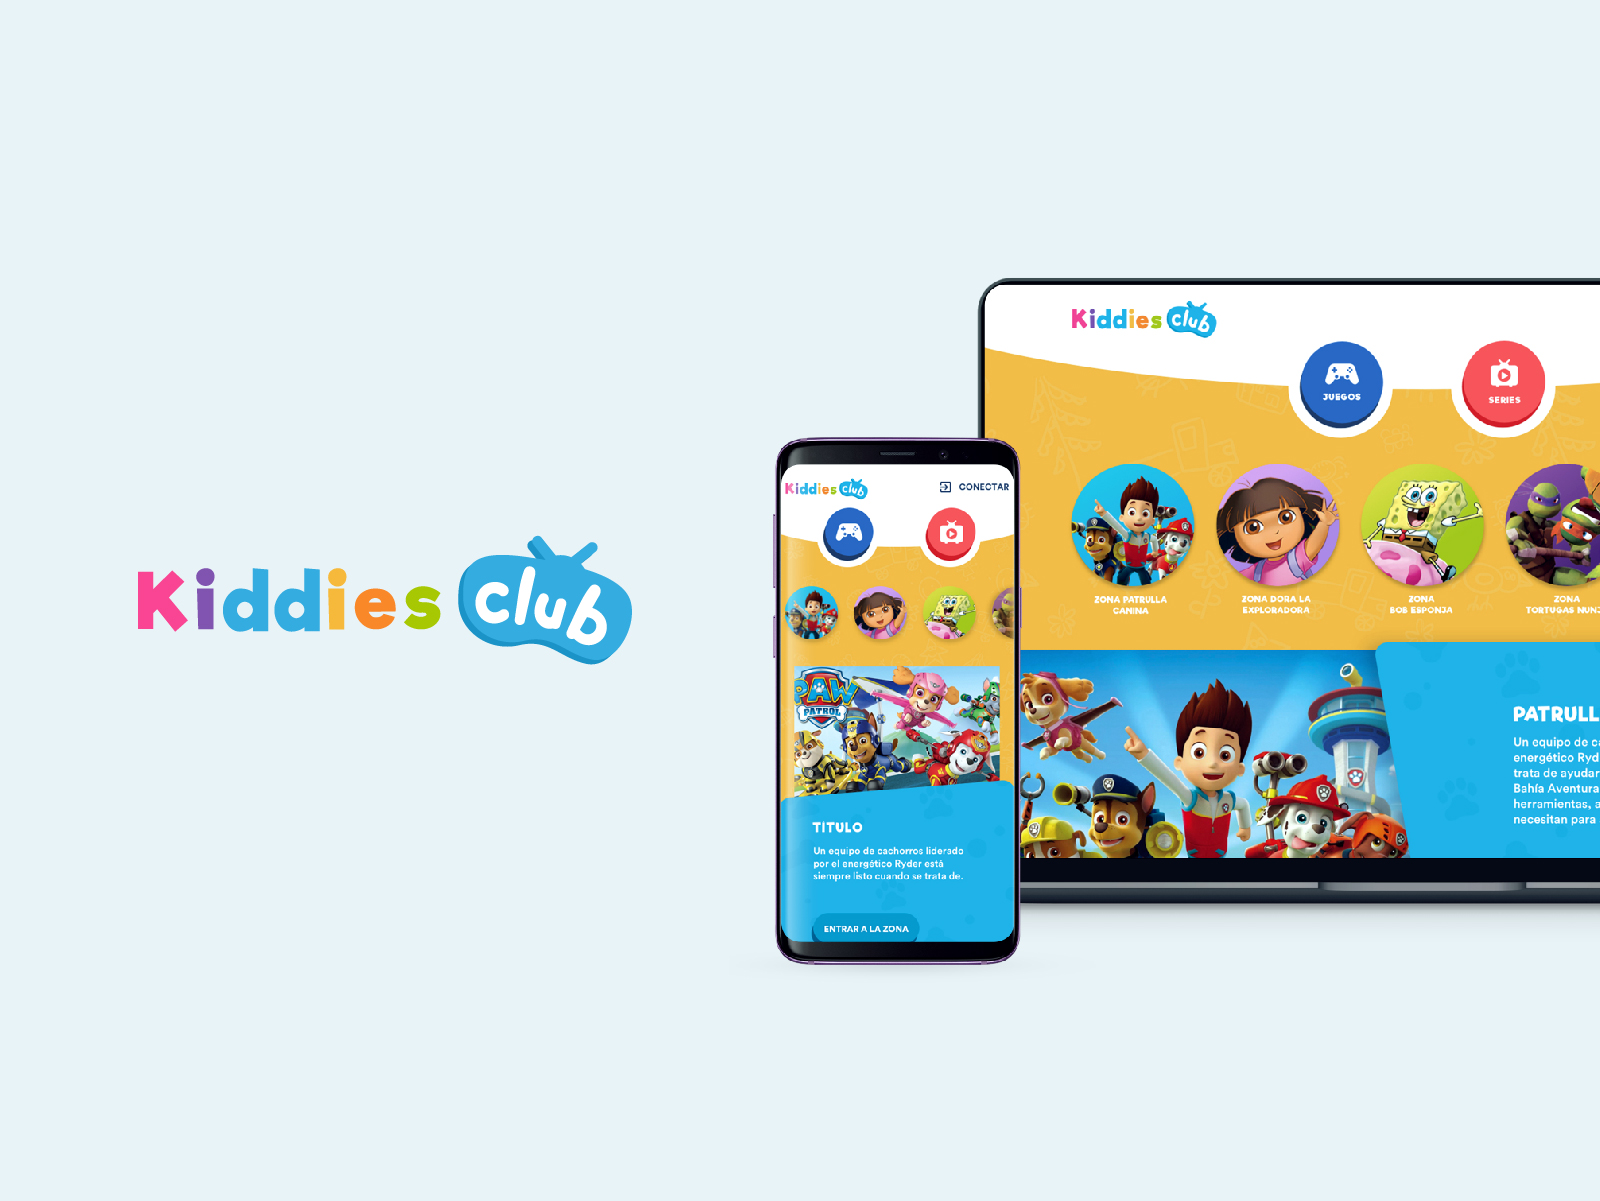 KIDDIES CLUB have the best educational content and supports the most interactive formats.  Digital entertainment is framed through pedagogy and entertainment.